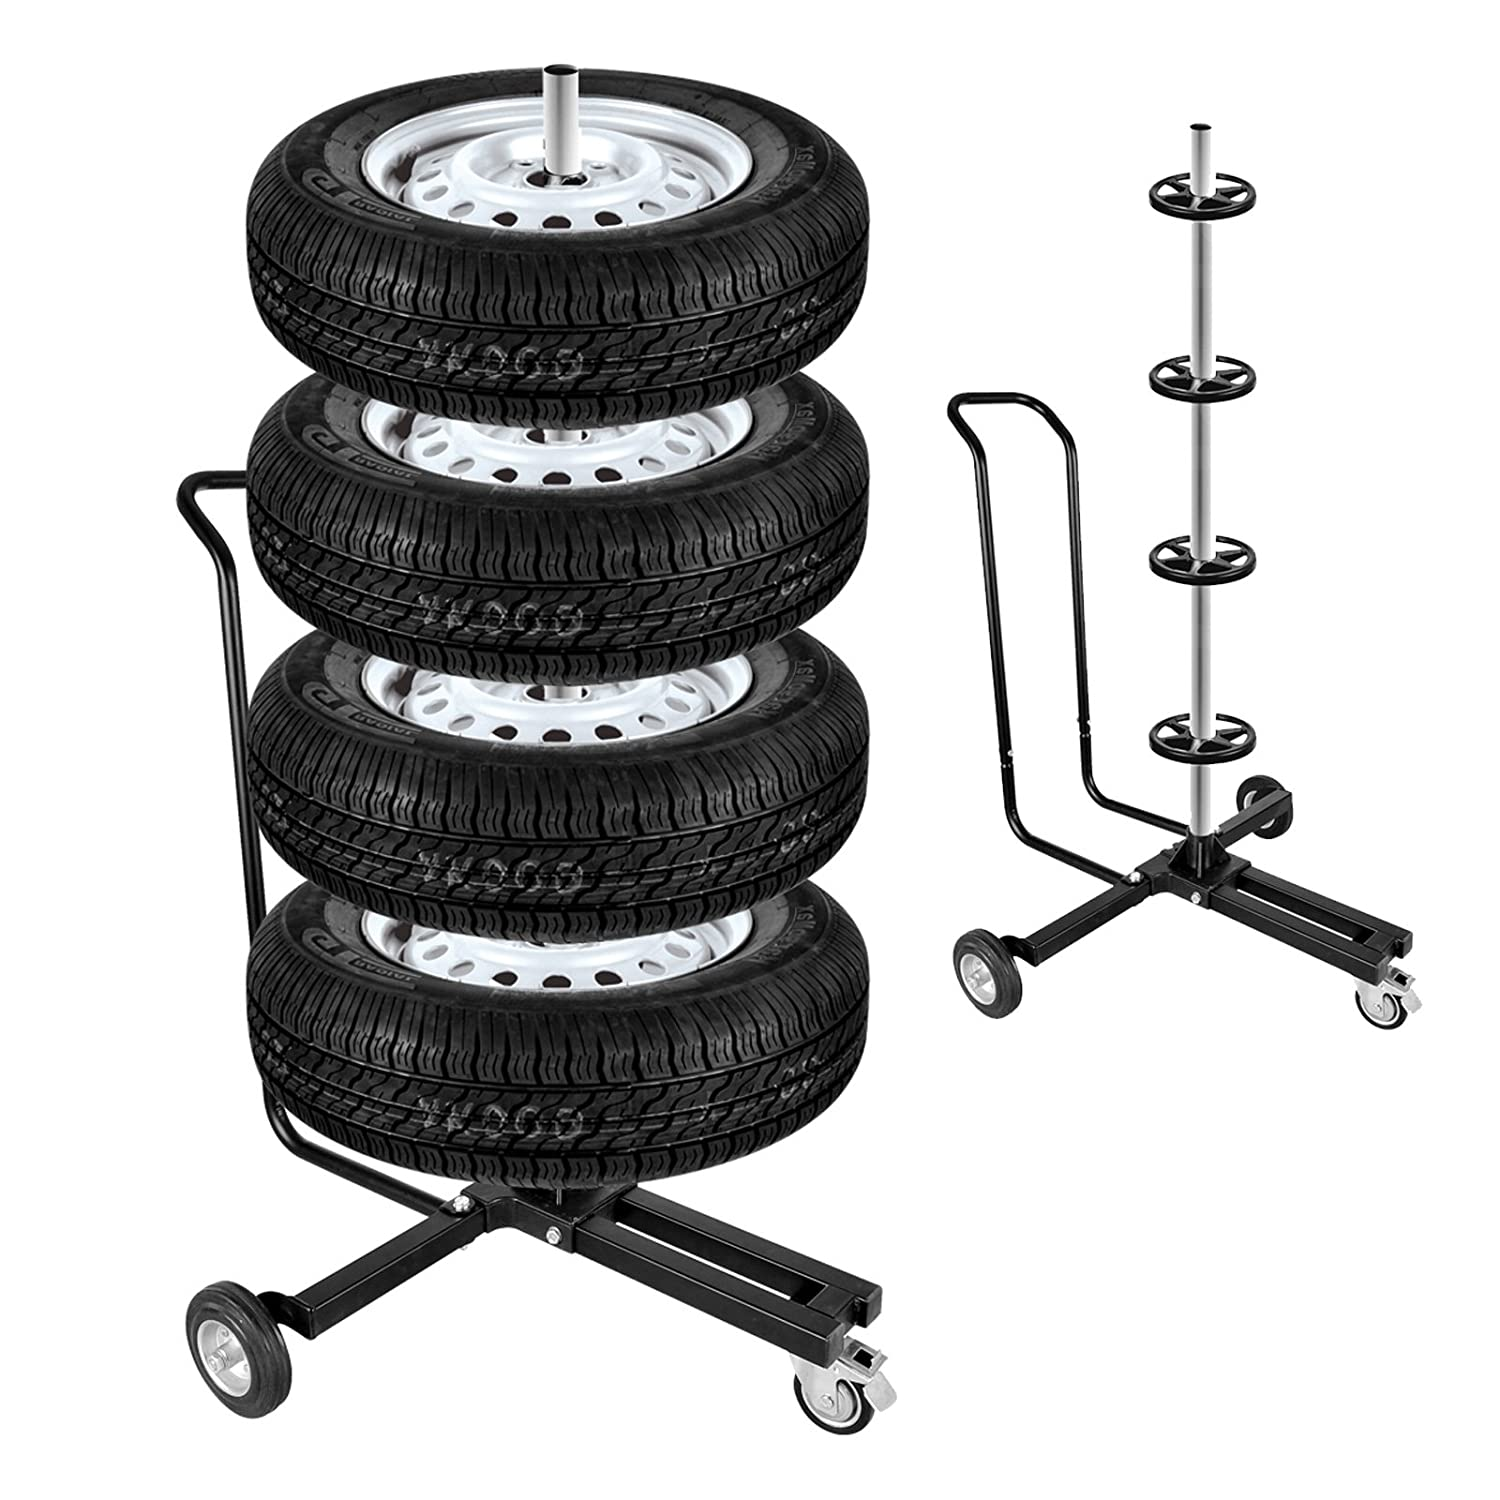 Wheels Black 225ER 4  Tyres Rims Tree Aluminium Max 100kg with Parking Brake Cable Pat